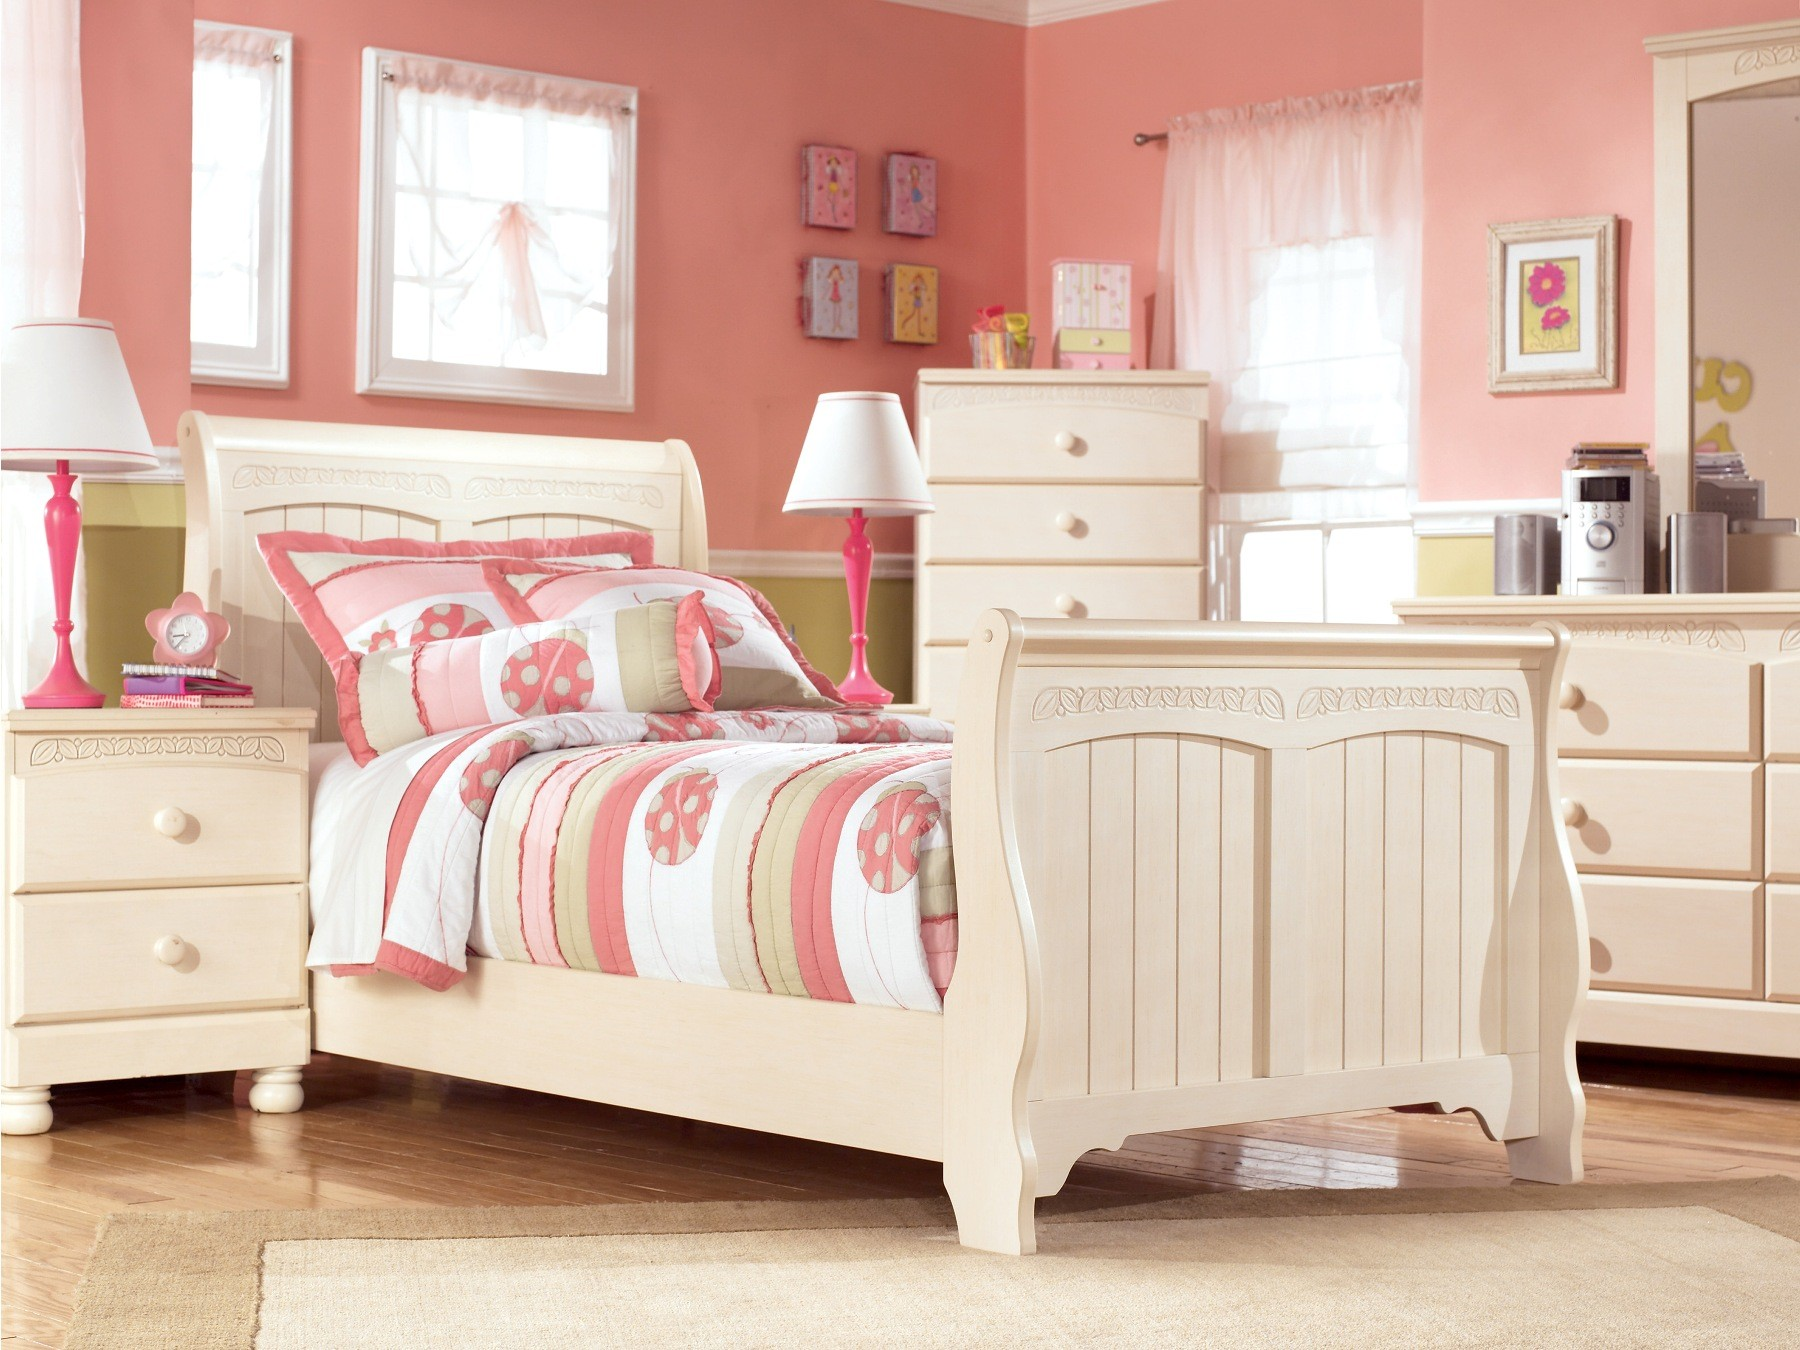 bedroom set bed with open footrail nightstand desk hutch and chest